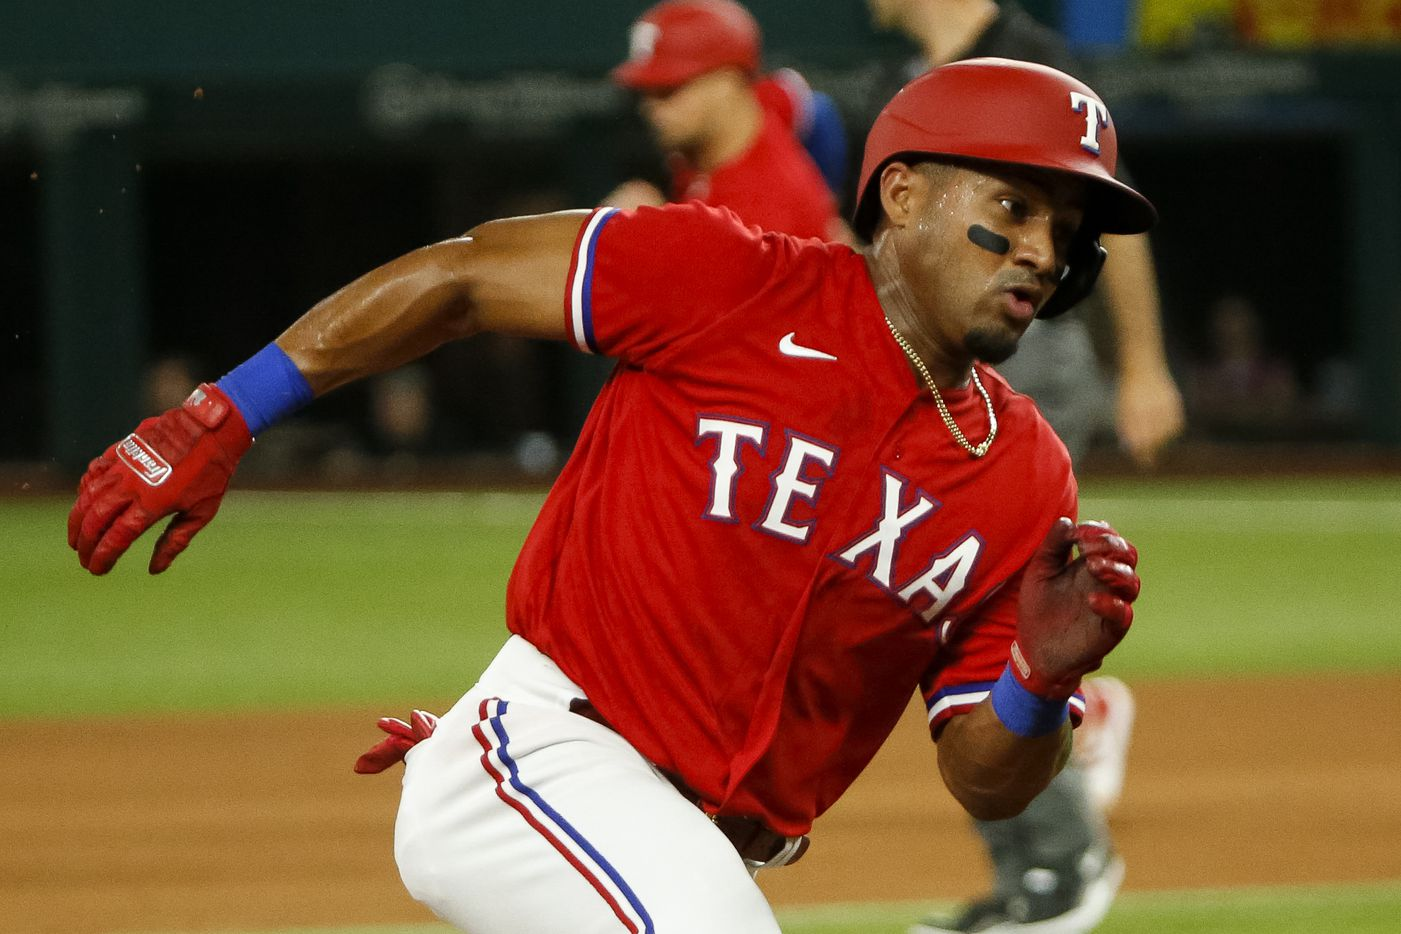 Texas Rangers designated hitter Andy Ibanez (77) runs to third base during the sixth inning against the Kansas City Royals at Globe Life Field on Friday, June 25, 2021, in Arlington. (Elias Valverde II/The Dallas Morning News)